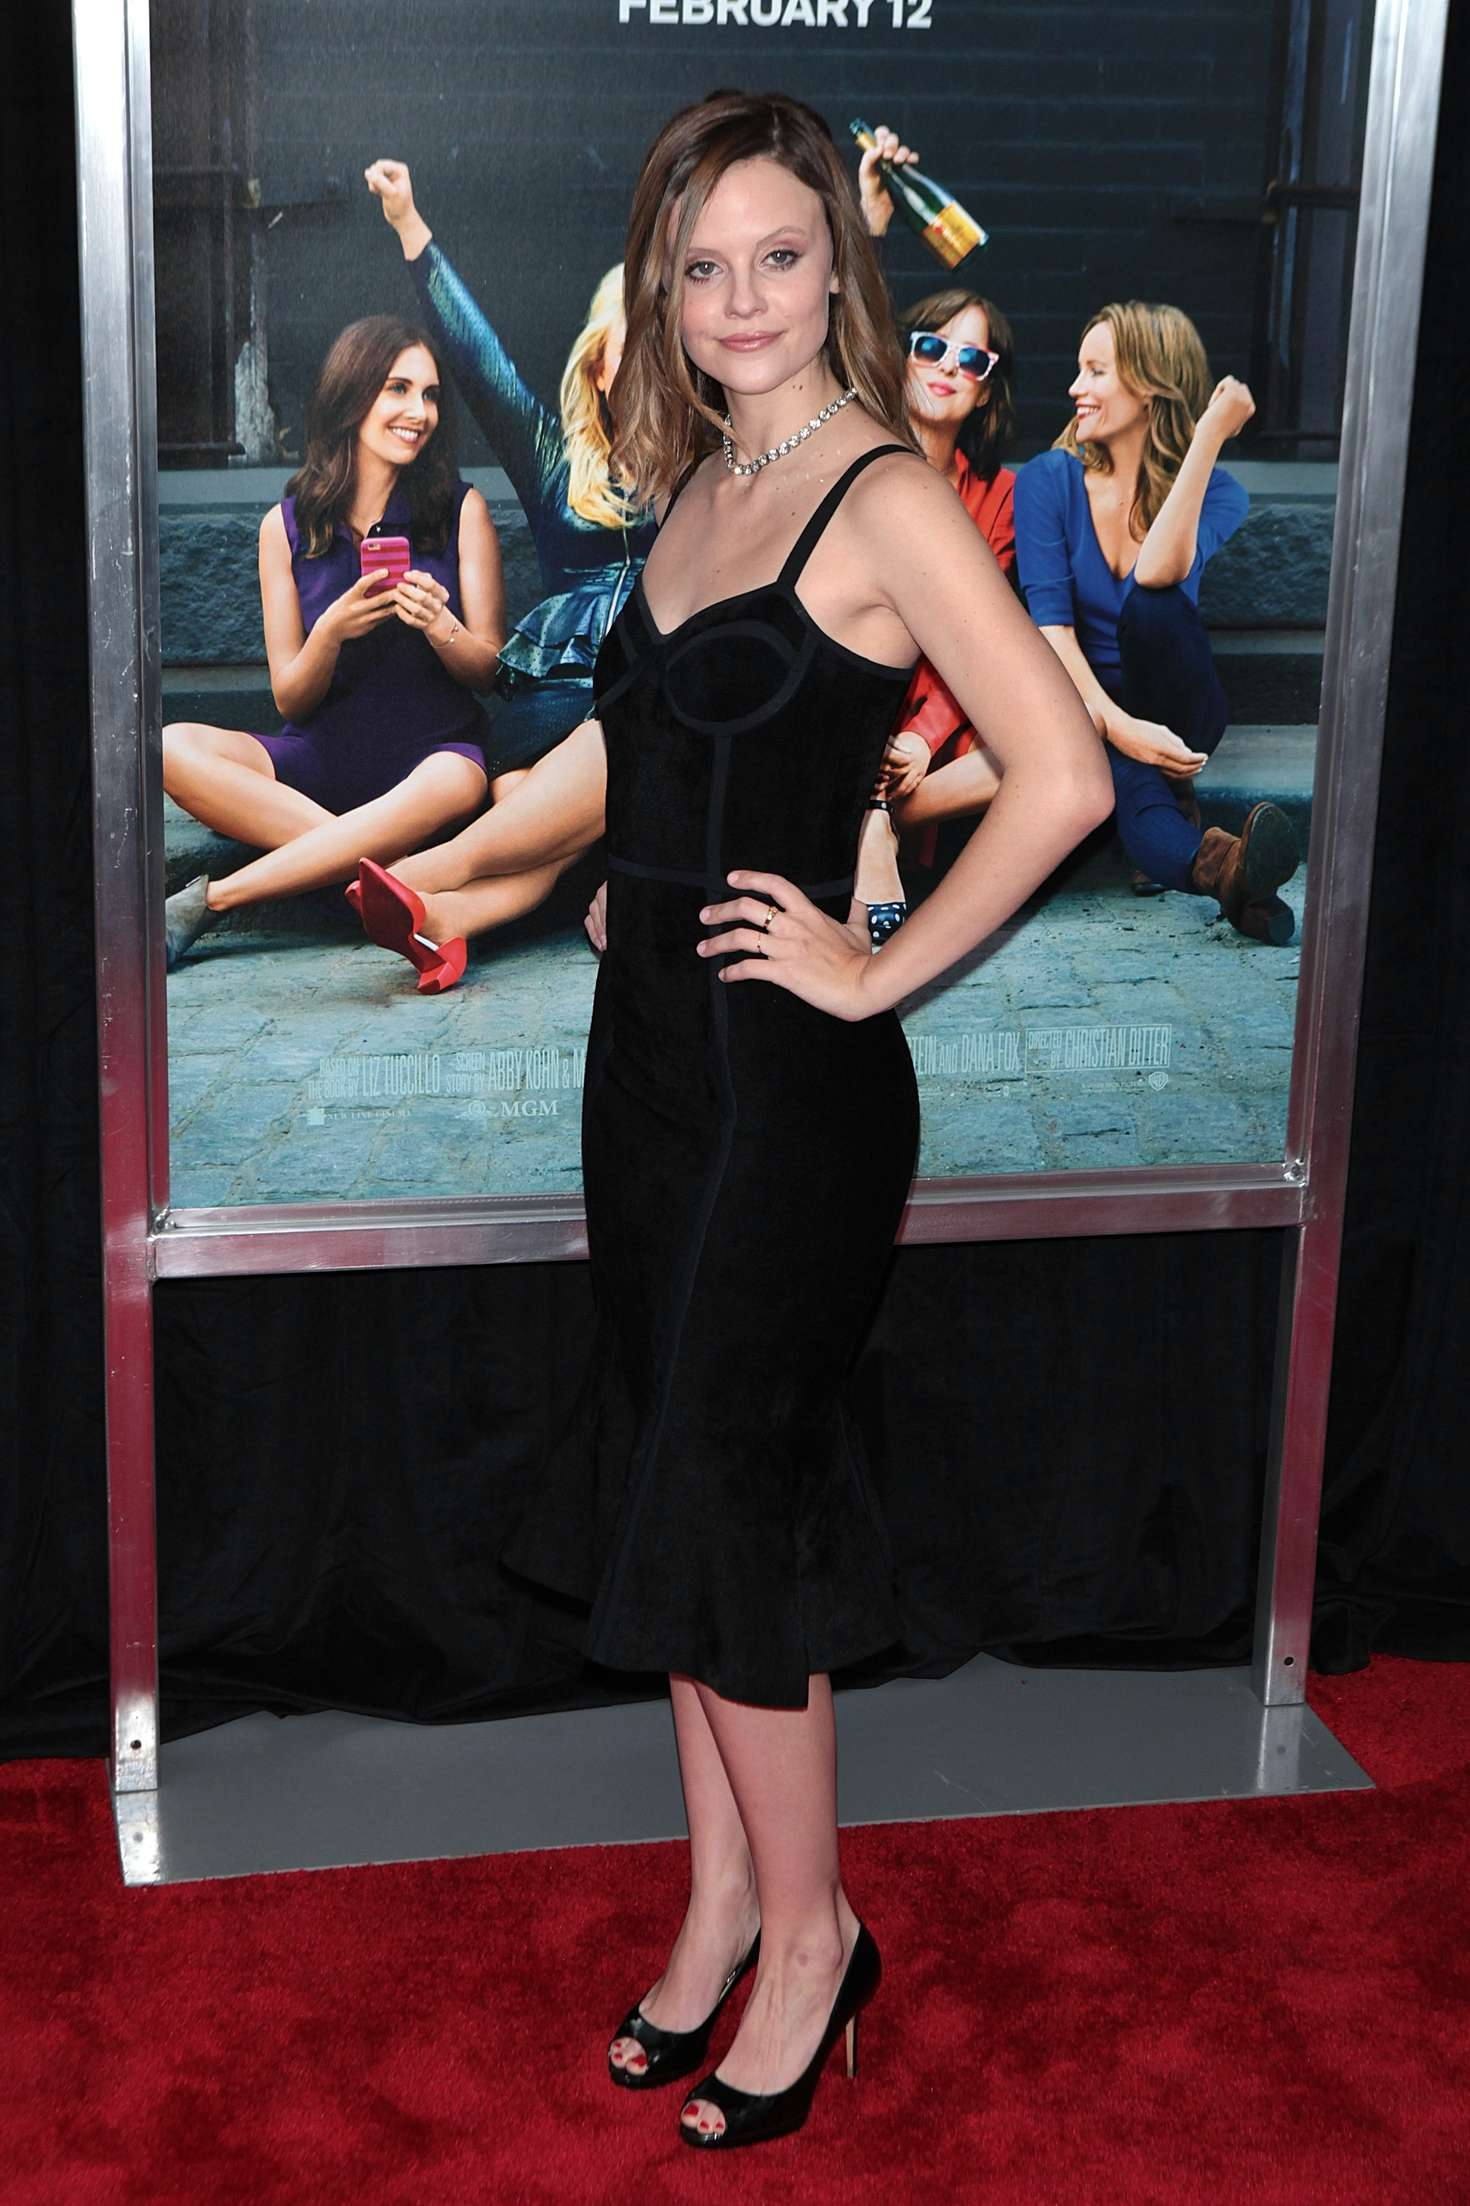 Sarah ramos how to be single premiere in new york city sarah ramos how to be single ny premiere ccuart Choice Image